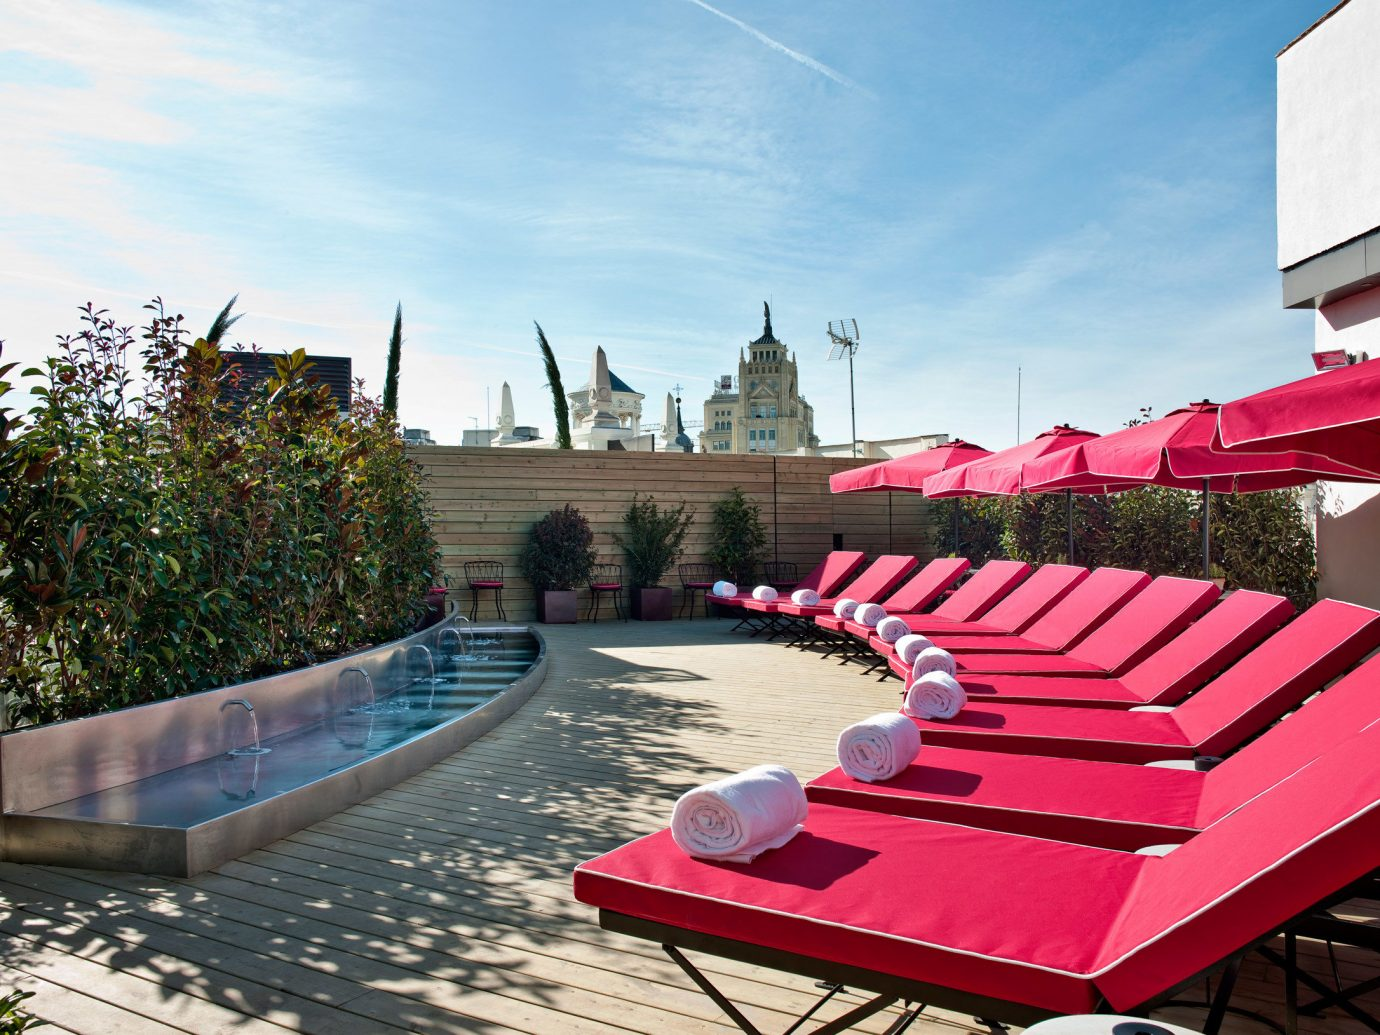 Hotels Madrid Spain sky outdoor ground leisure red swimming pool vacation Resort estate walkway